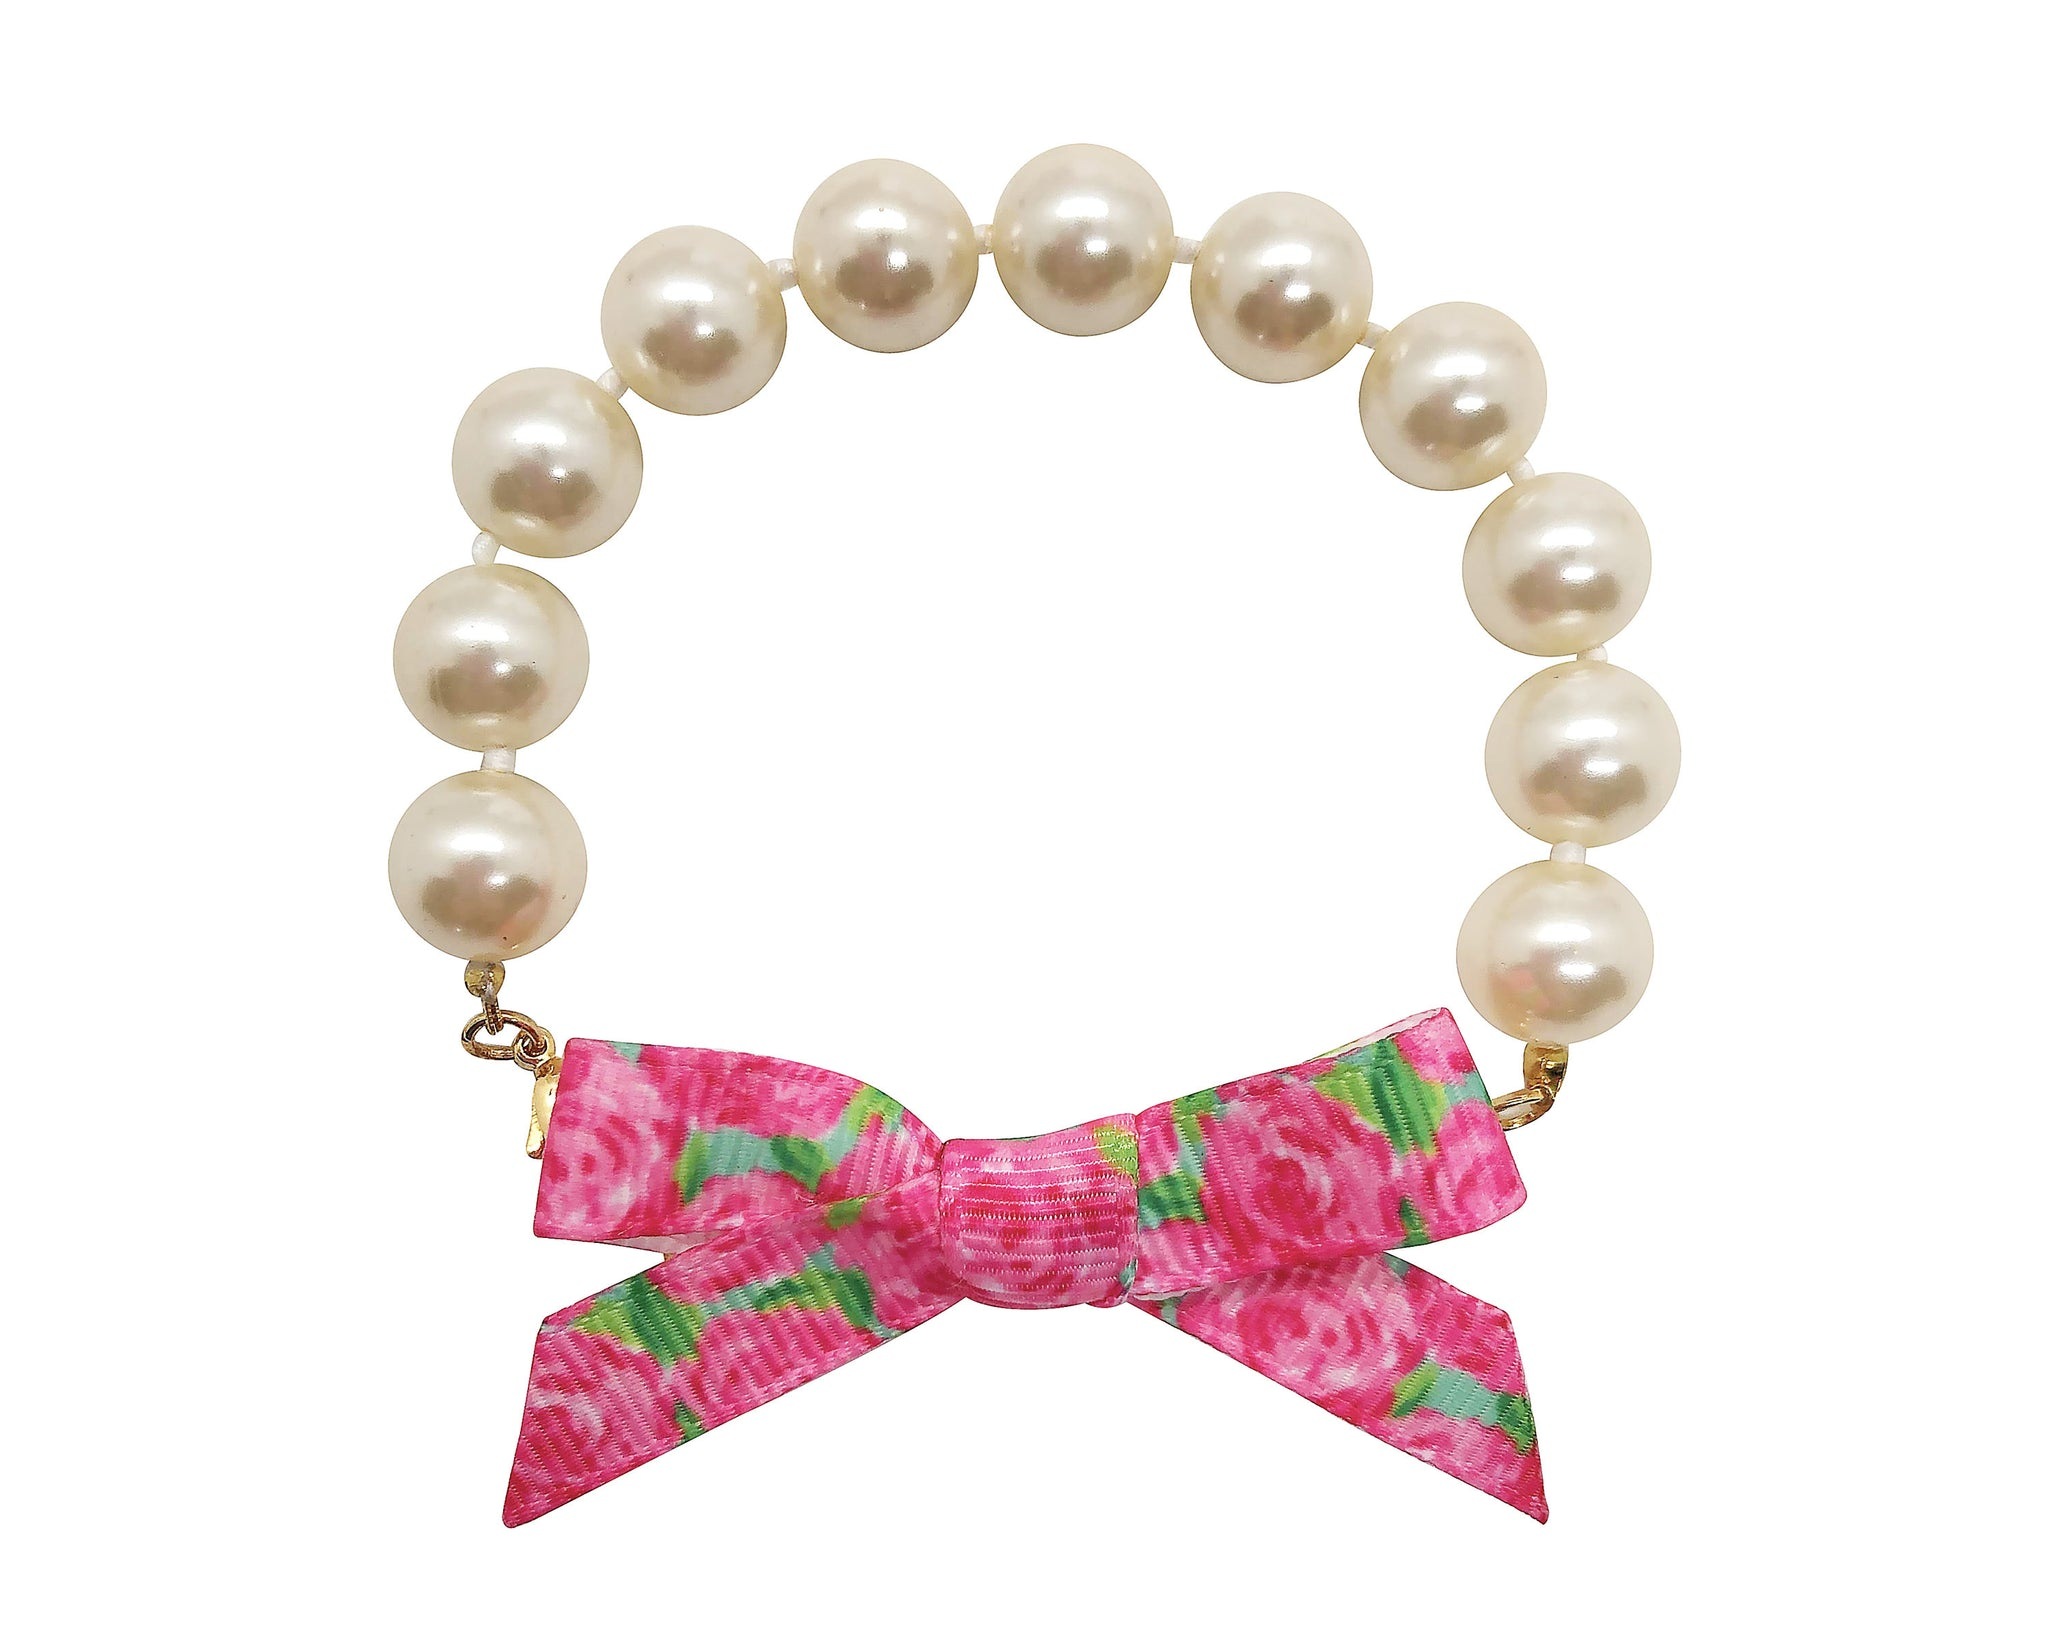 Lilly Pulitzer Inspired Bow Pearl Bracelet | Hotty First Impression